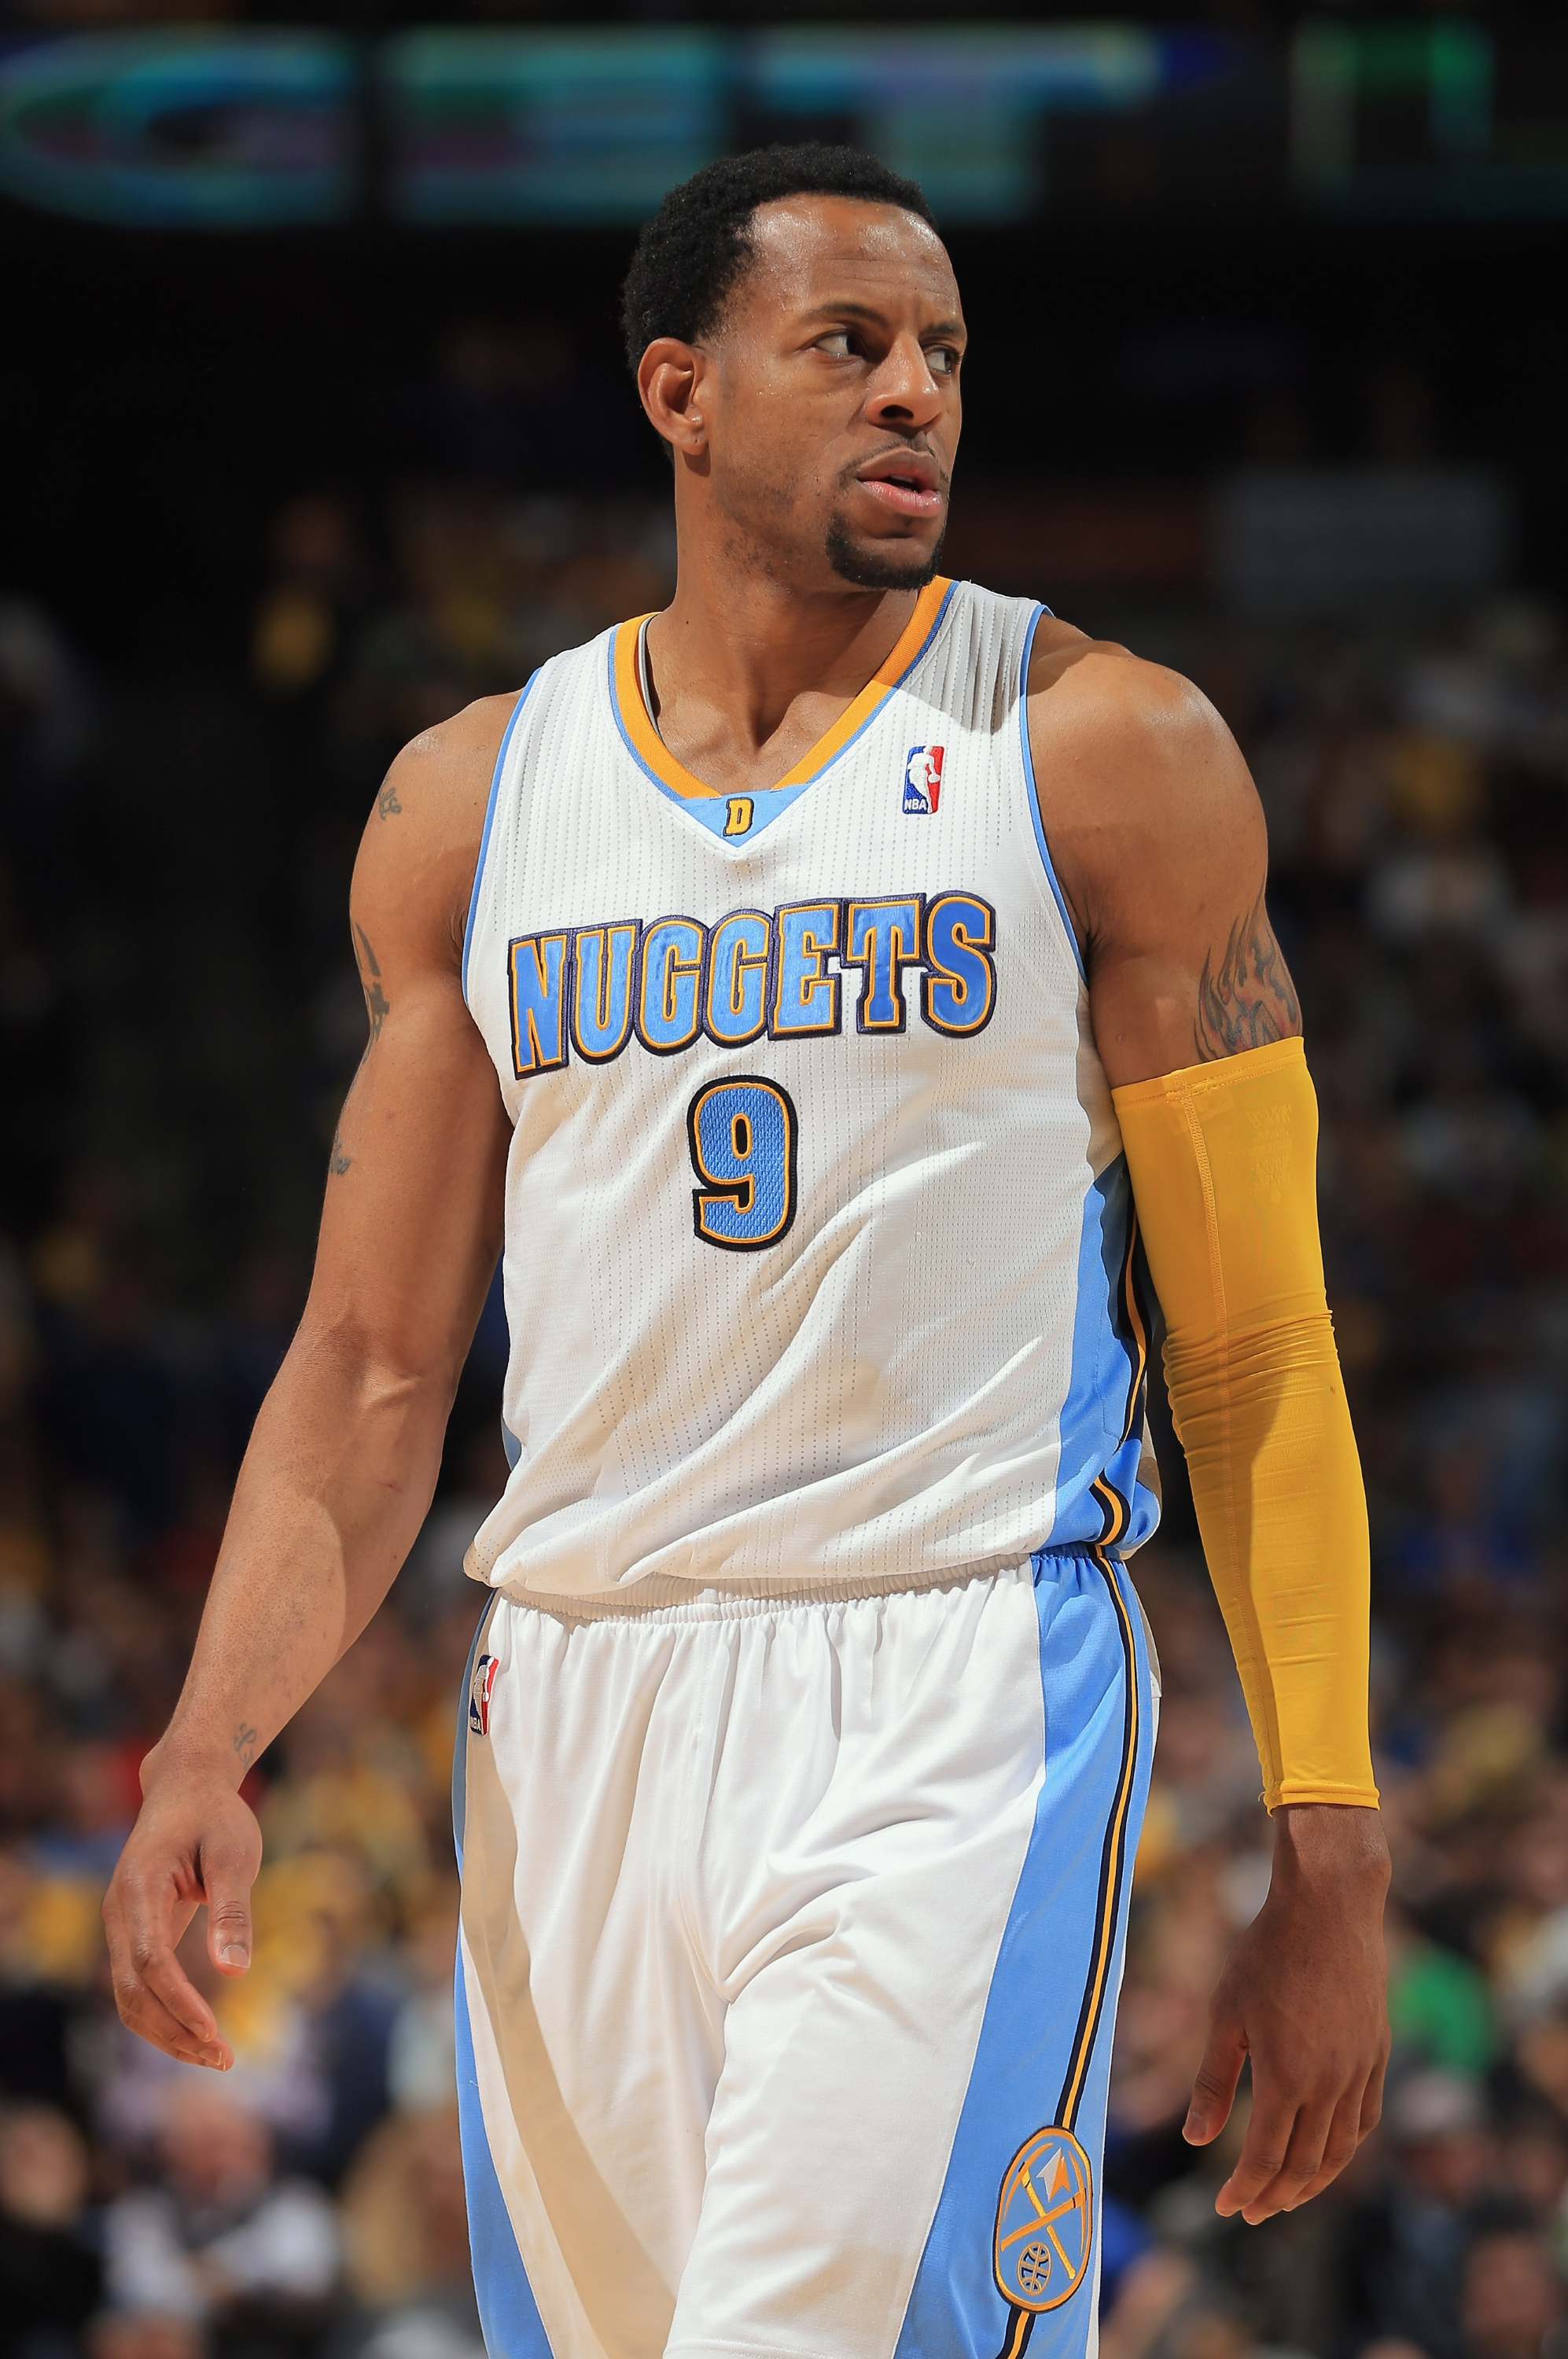 Andre Iguodala averaged 13 points, 5.3 rebounds and 5.4 assists this season. (Getty Images)